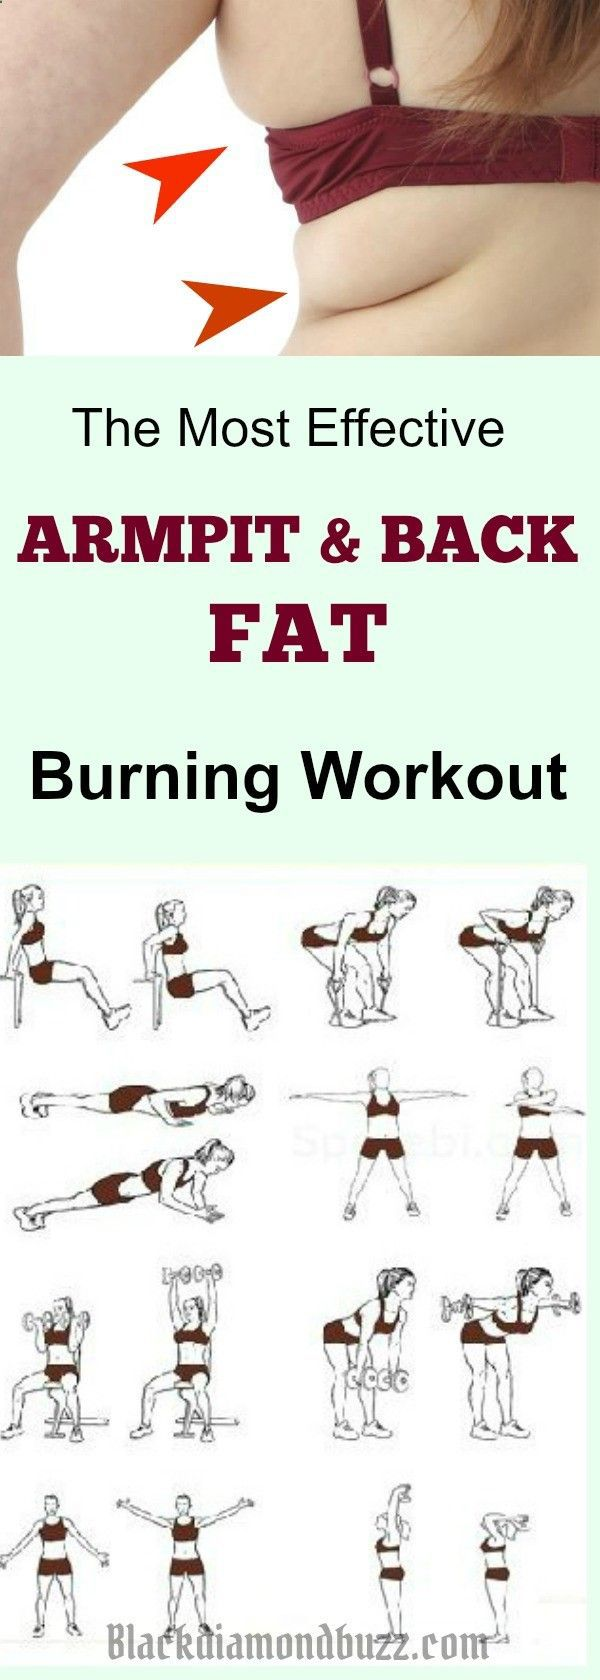 Best exercises for Back fat rolls and underarm fat at Home for Women : This is how you can get rid of back fat and armpit fat fast 1 week this summer . diet workout toned arms